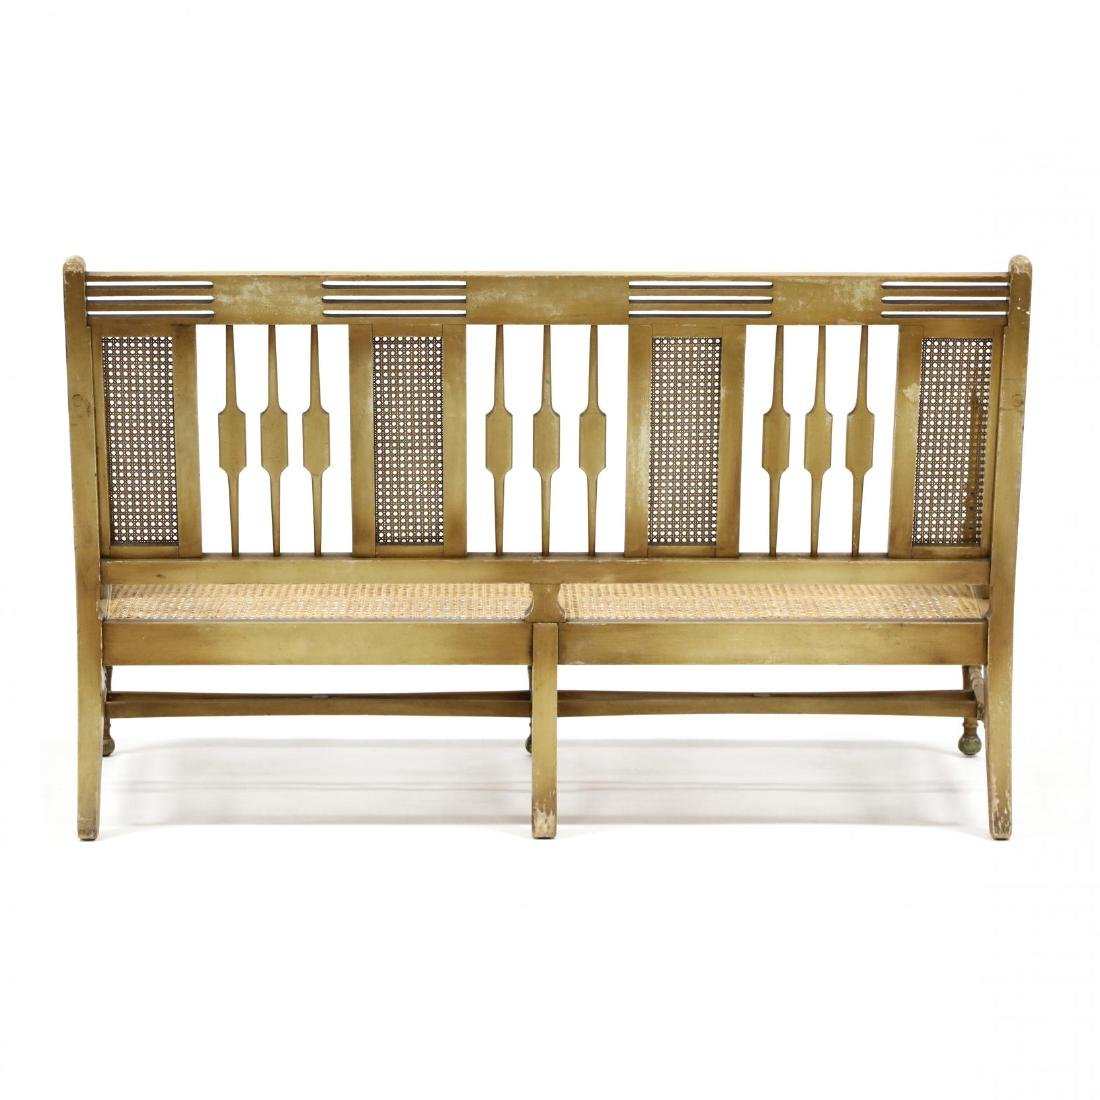 Elgin A. Simonds Furniture Co., Vintage Painted Caned - 5